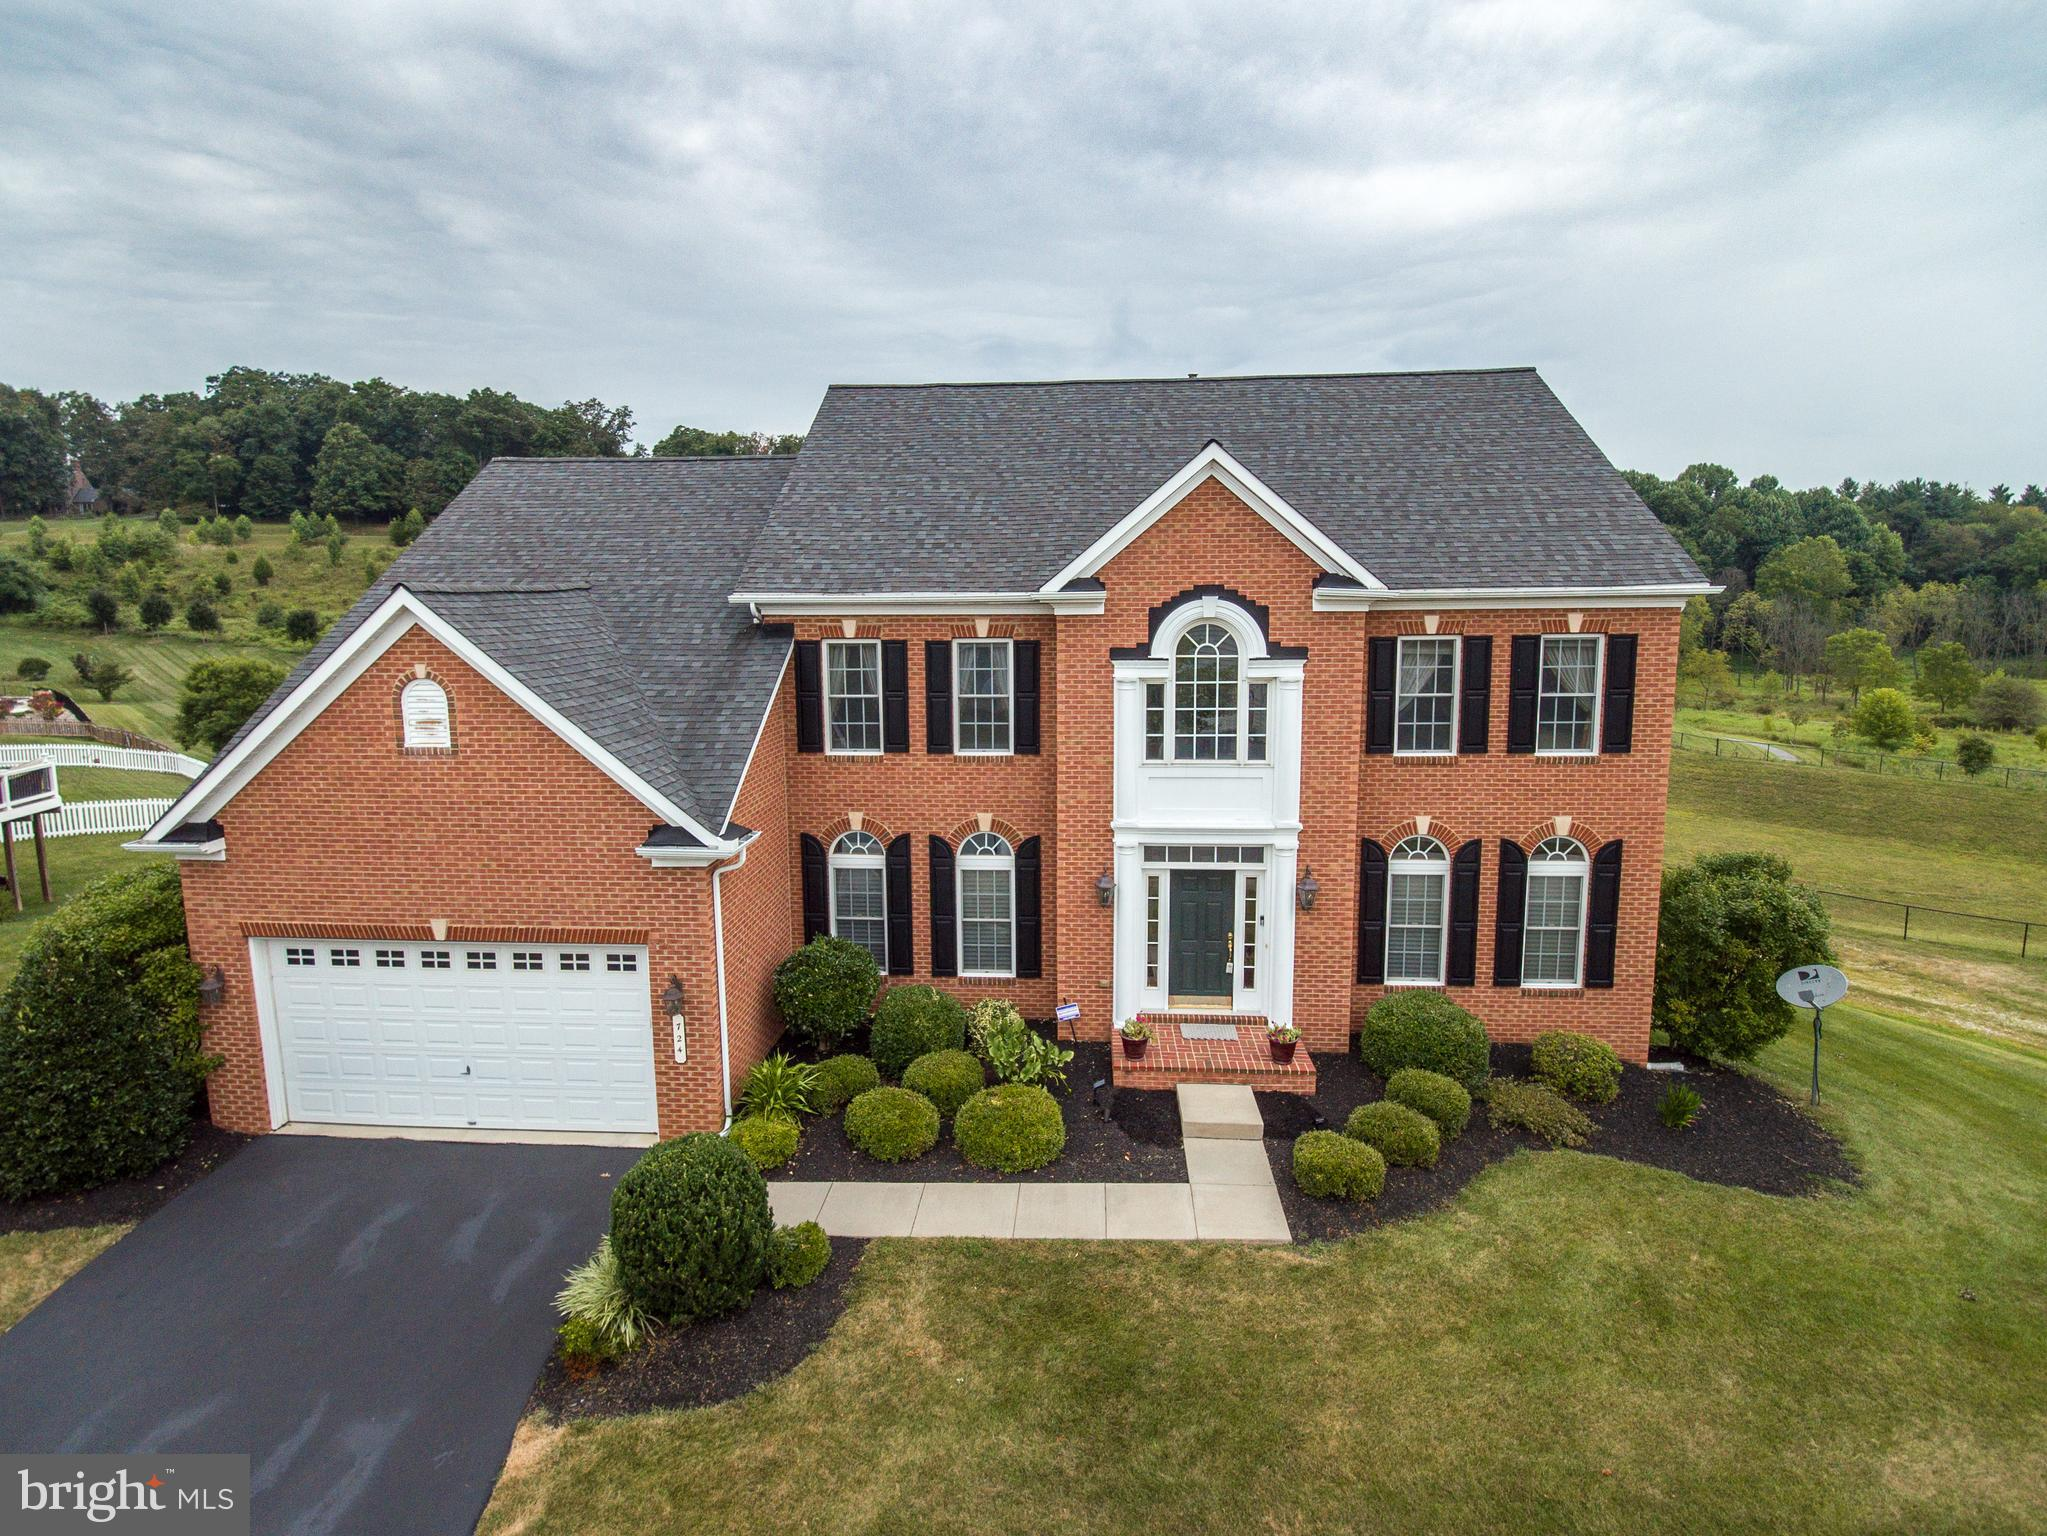 724 HIDDEN STREAM COURT, WESTMINSTER, MD 21158